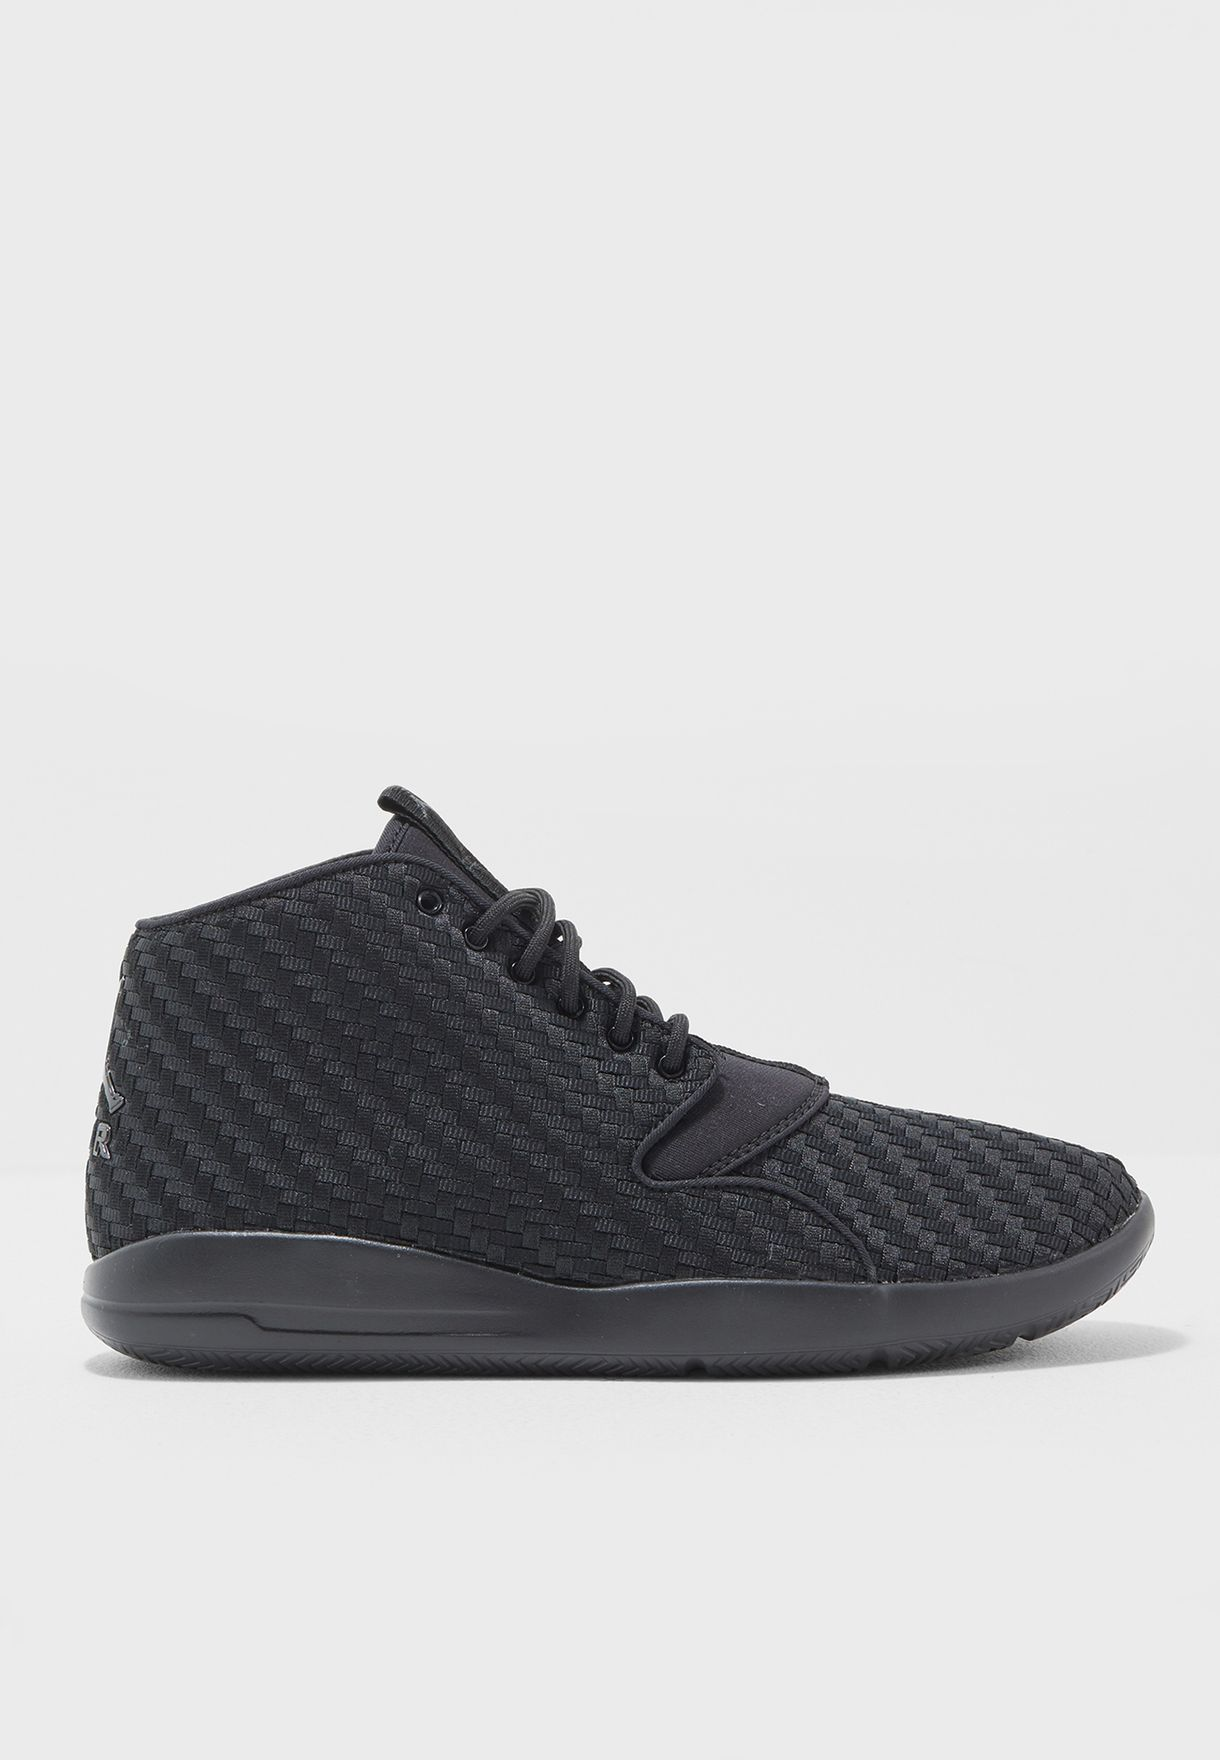 15bf11cf2f4b24 Shop Nike black Jordan Eclipse Chukka Woven AA3996-010 for Men in ...